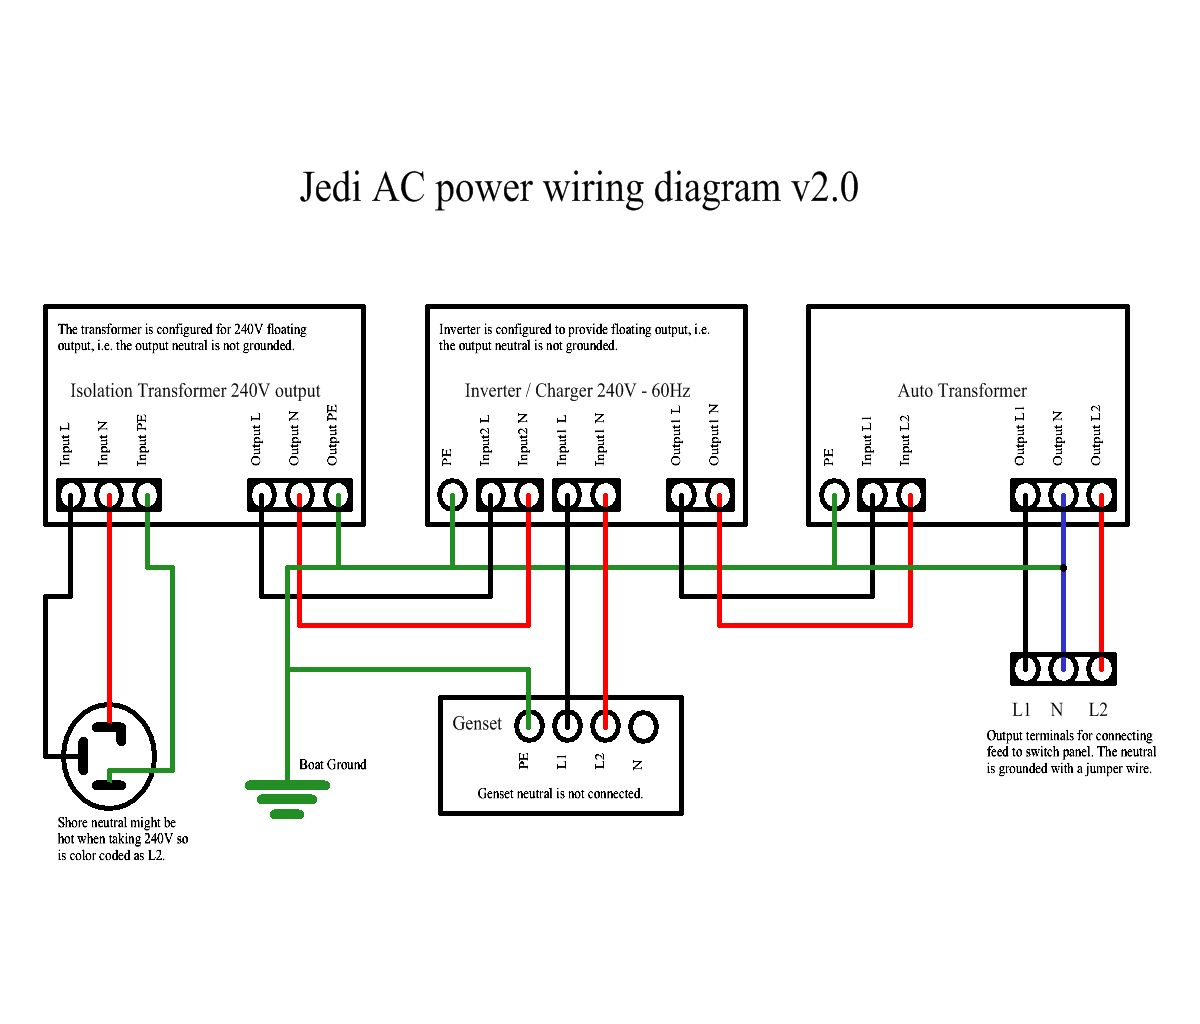 50 Hp Johnson Outboard 1973 Wiring Diagram together with Chrysler 55 Hp Outboard Wiring Diagram also JOwireindex moreover Document in addition JOwireindex. on omc marine alternator wiring diagram